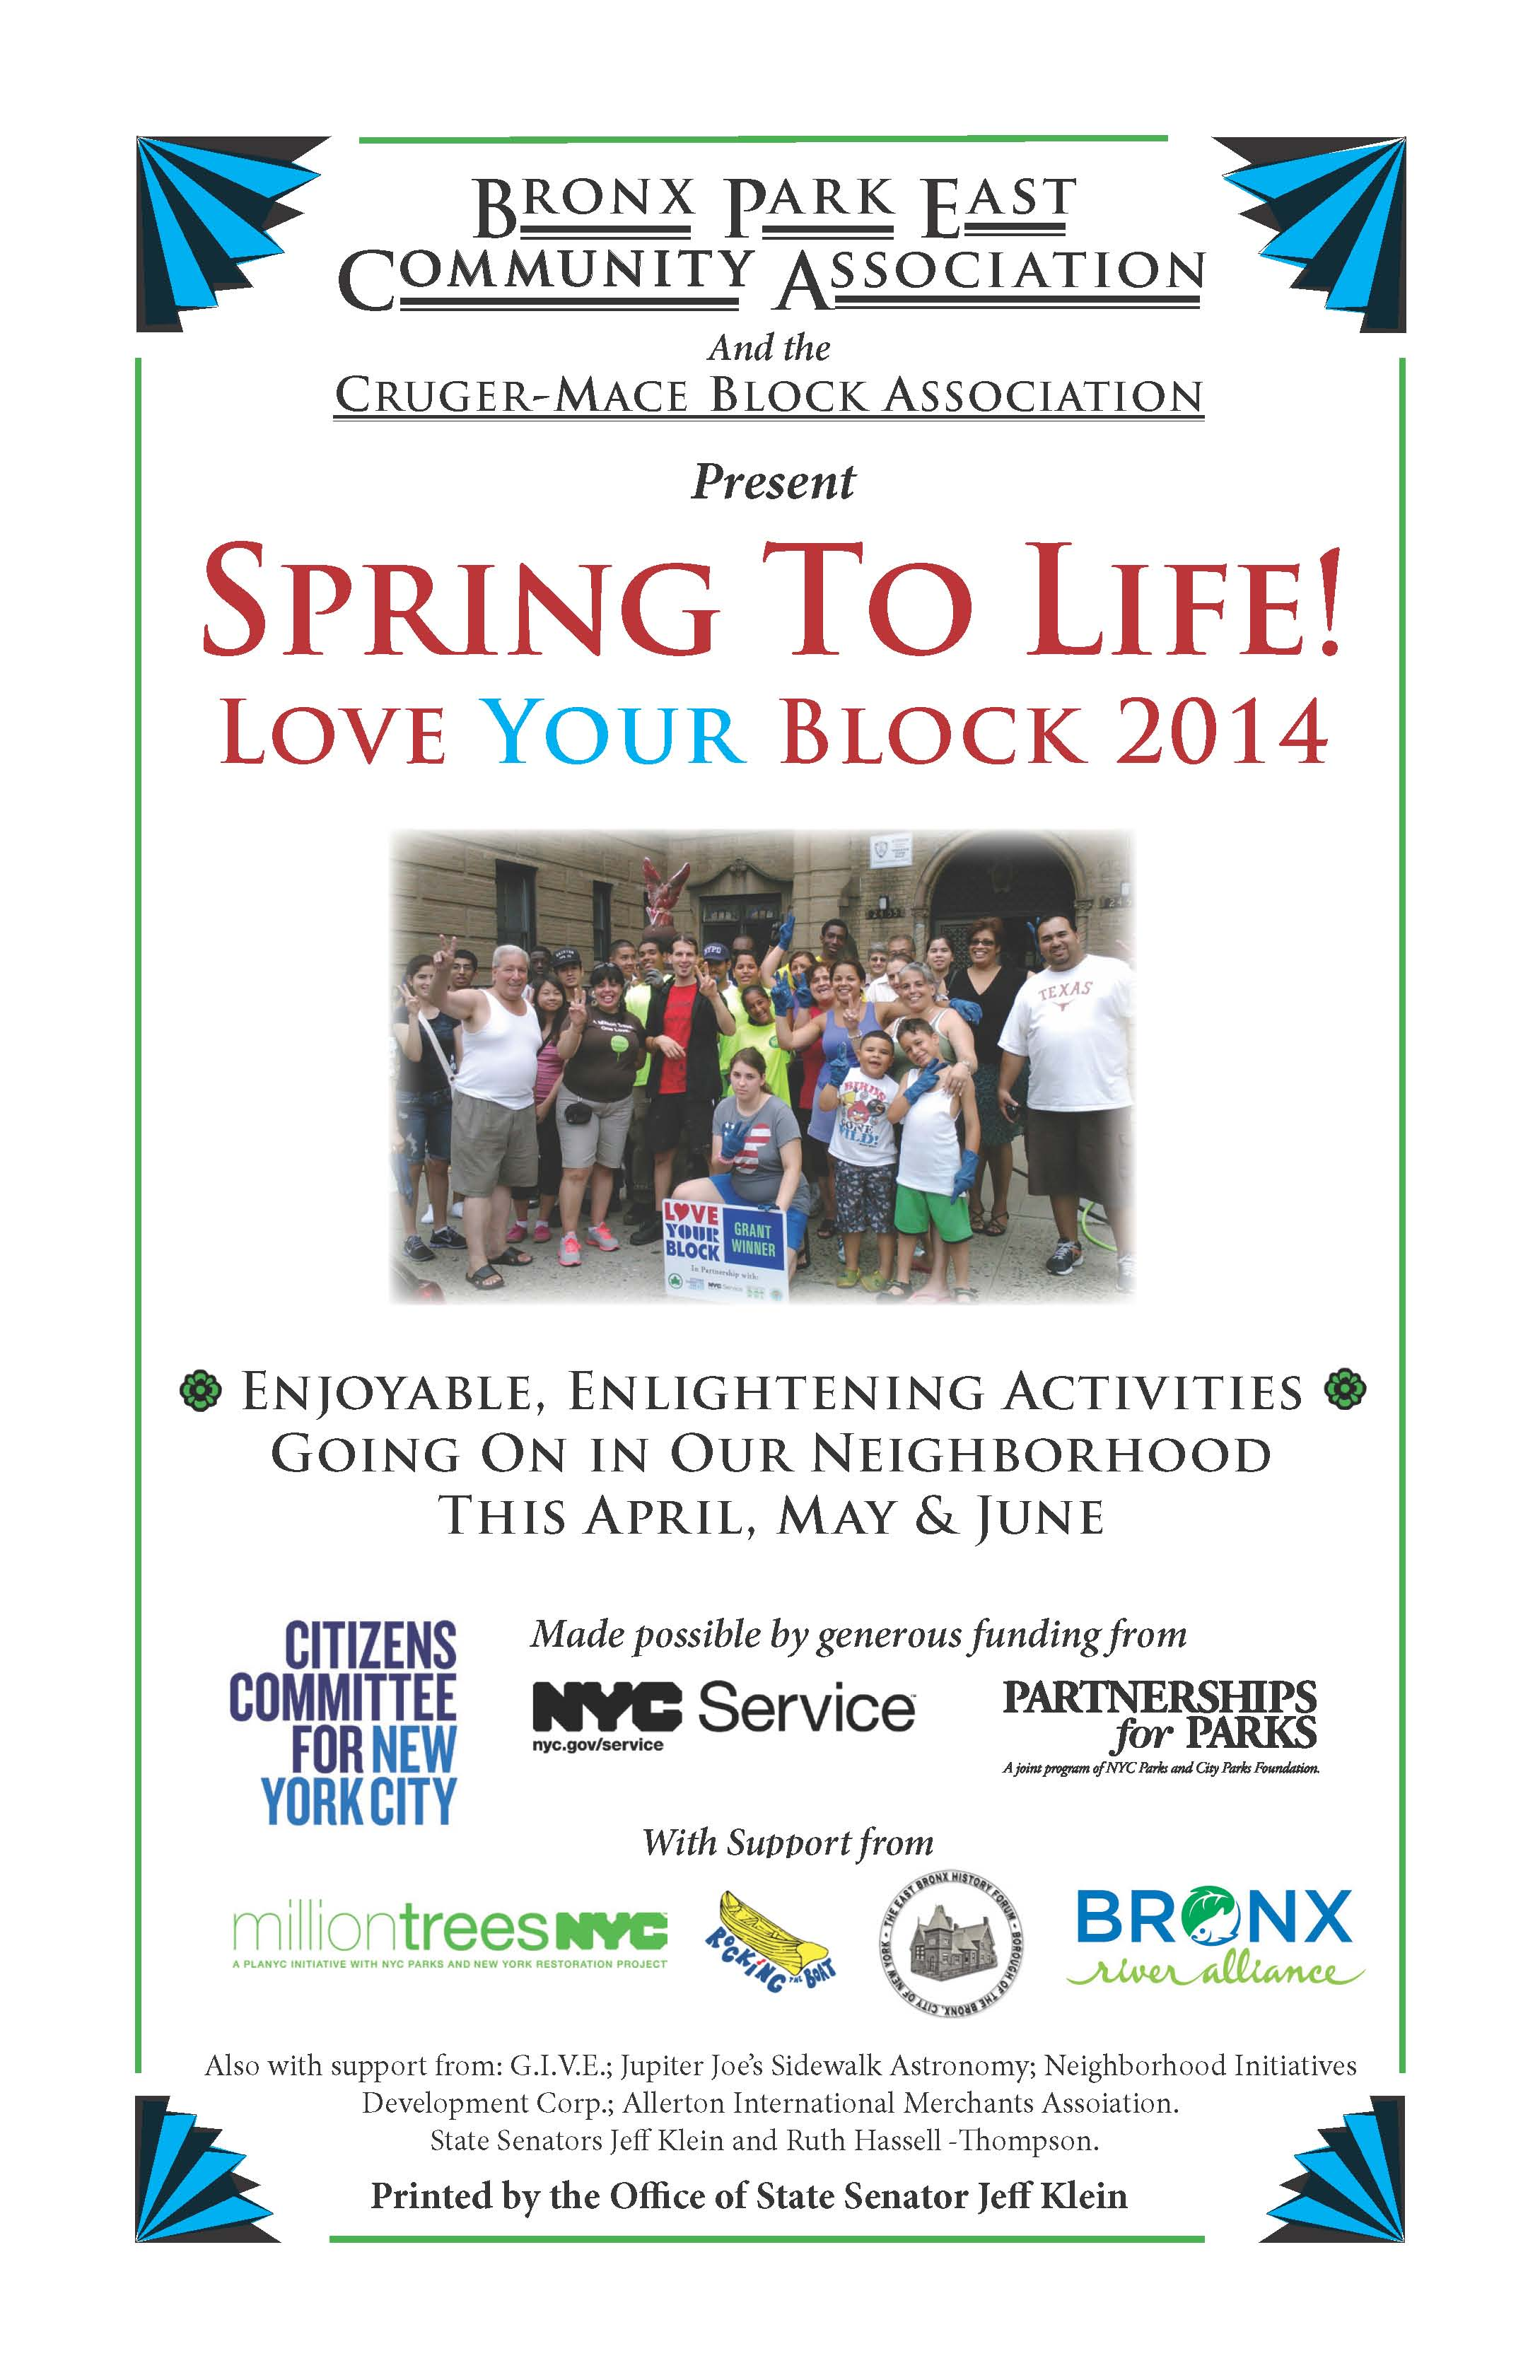 Spring_to_Life_-_Love_Your_Block_2014_Brochure_Cover_(first_draft)